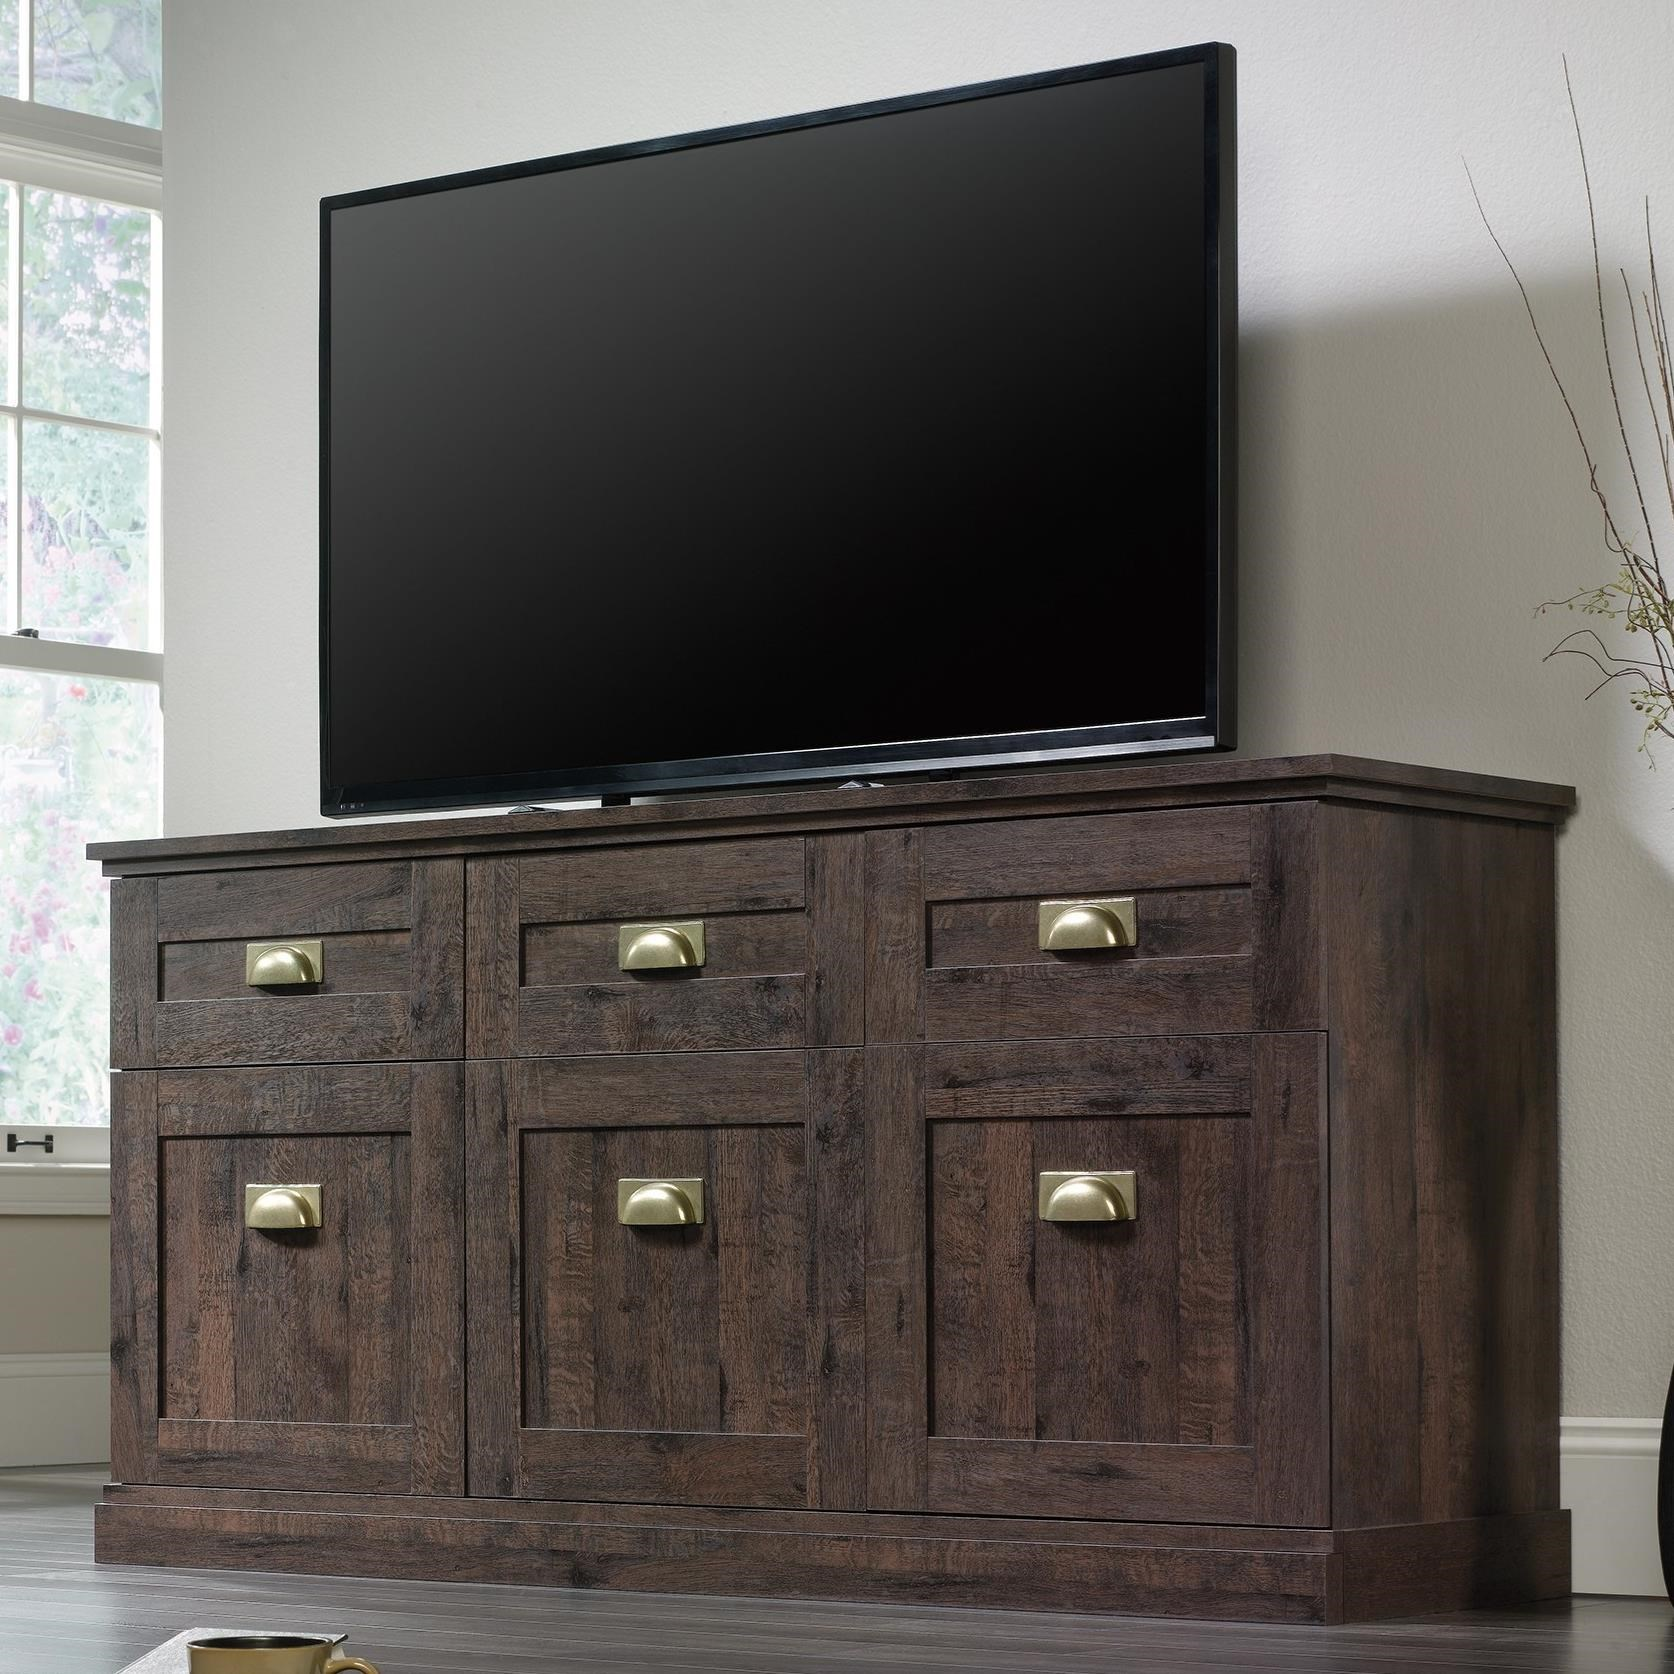 Furniture For Tv Components: Sauder New Grange 419142 Entertainment Credenza With Flip